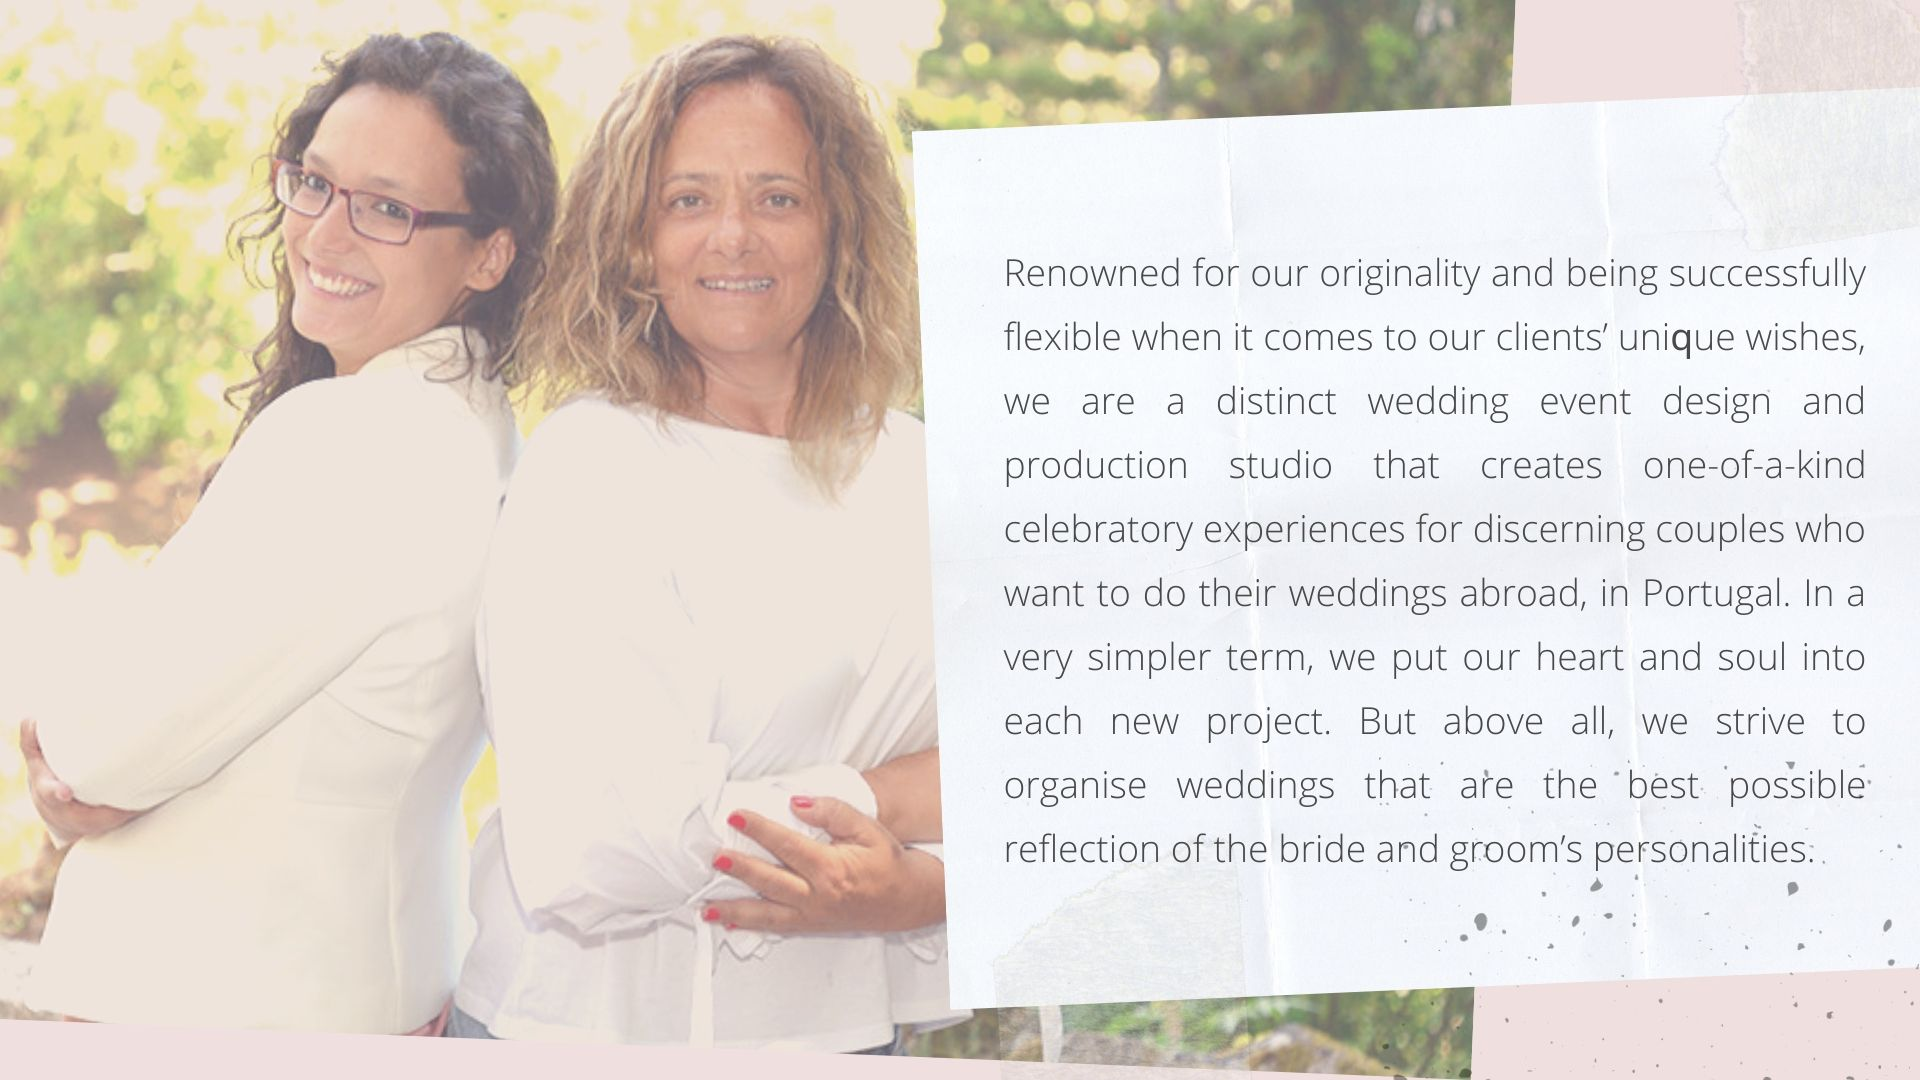 Wedding Planner in Portugal - About UsWedding Planner in Portugal - About Us